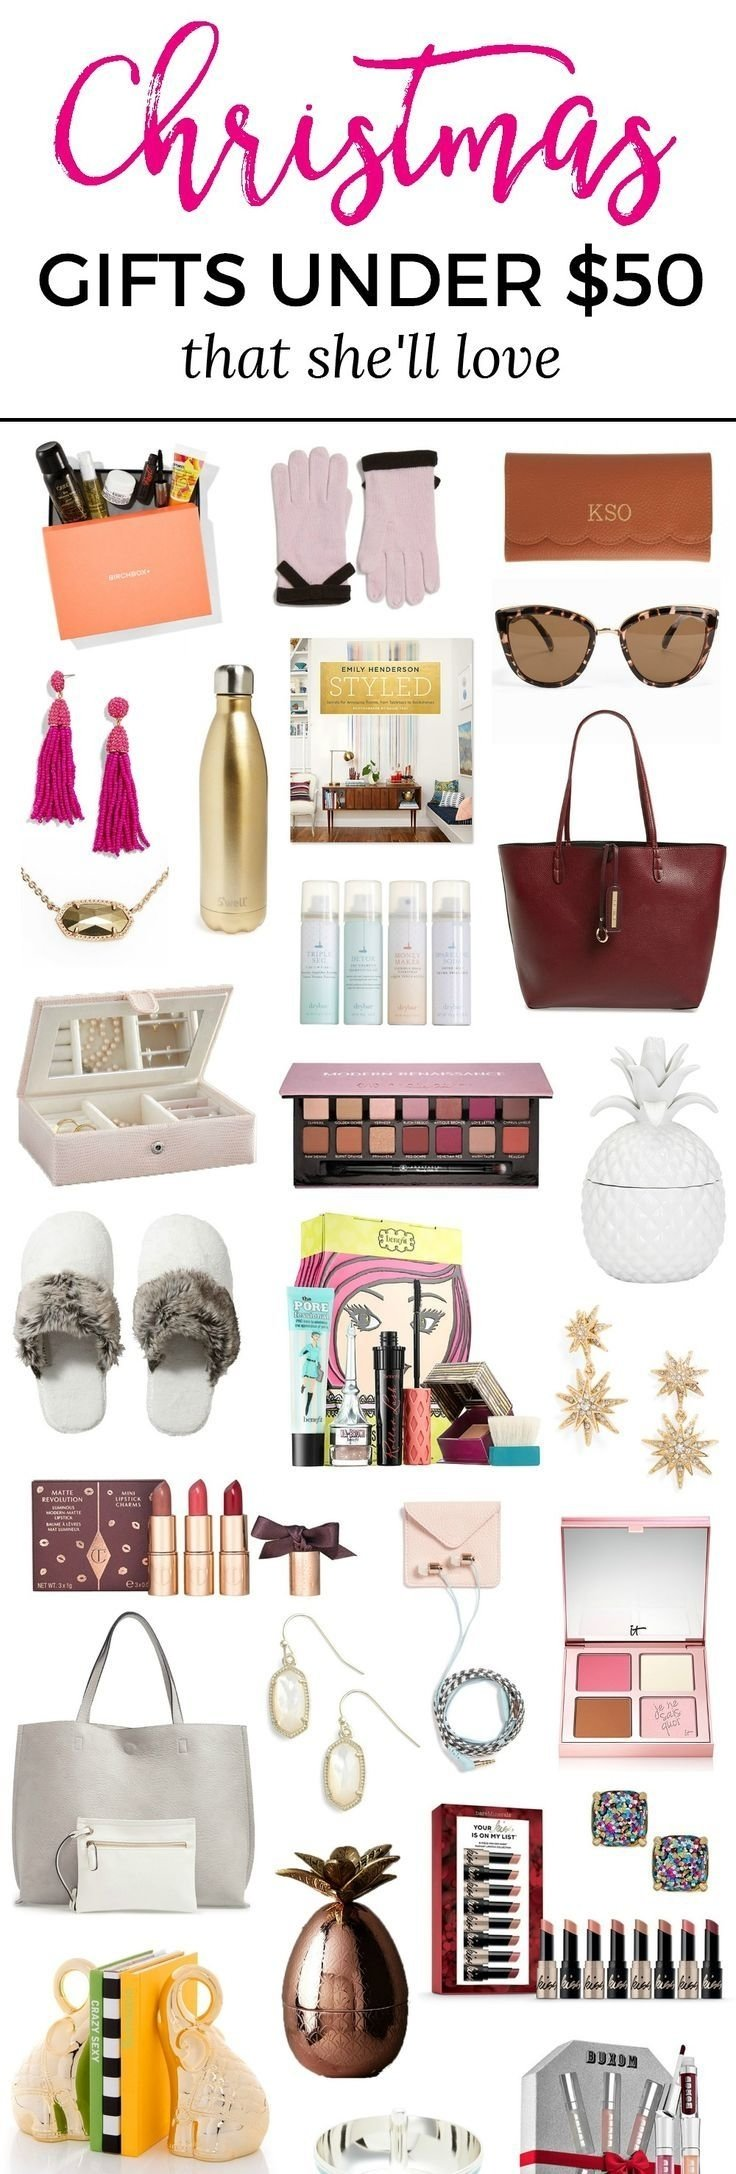 10 Lovely Birthday Gift Ideas For Women Present Best Photo Gifts